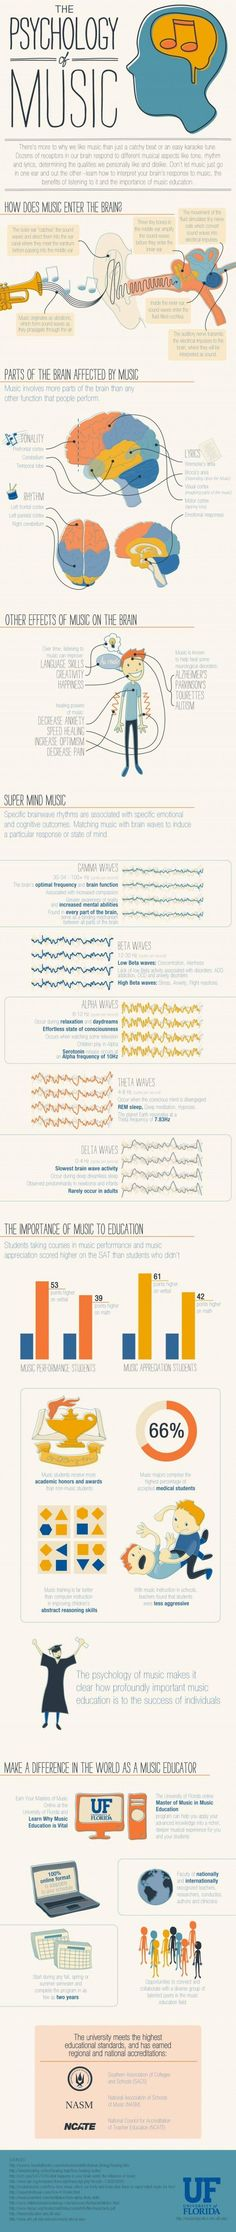 The Psychology of Music [infographic]